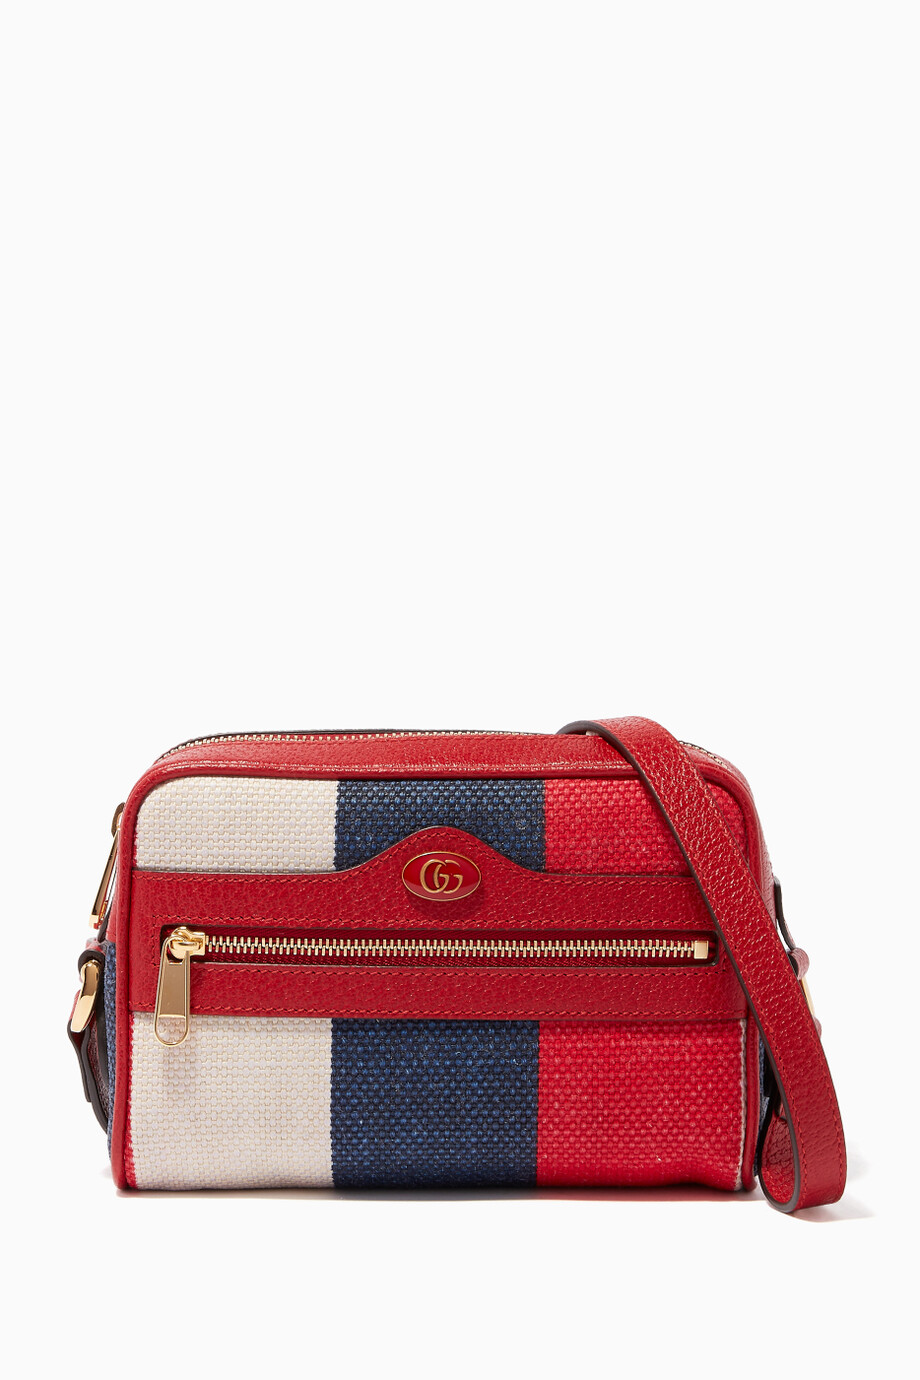 f98a3d1ff586 Shop Gucci Red Red Mini Ophidia Striped Canvas Shoulder Bag for ...